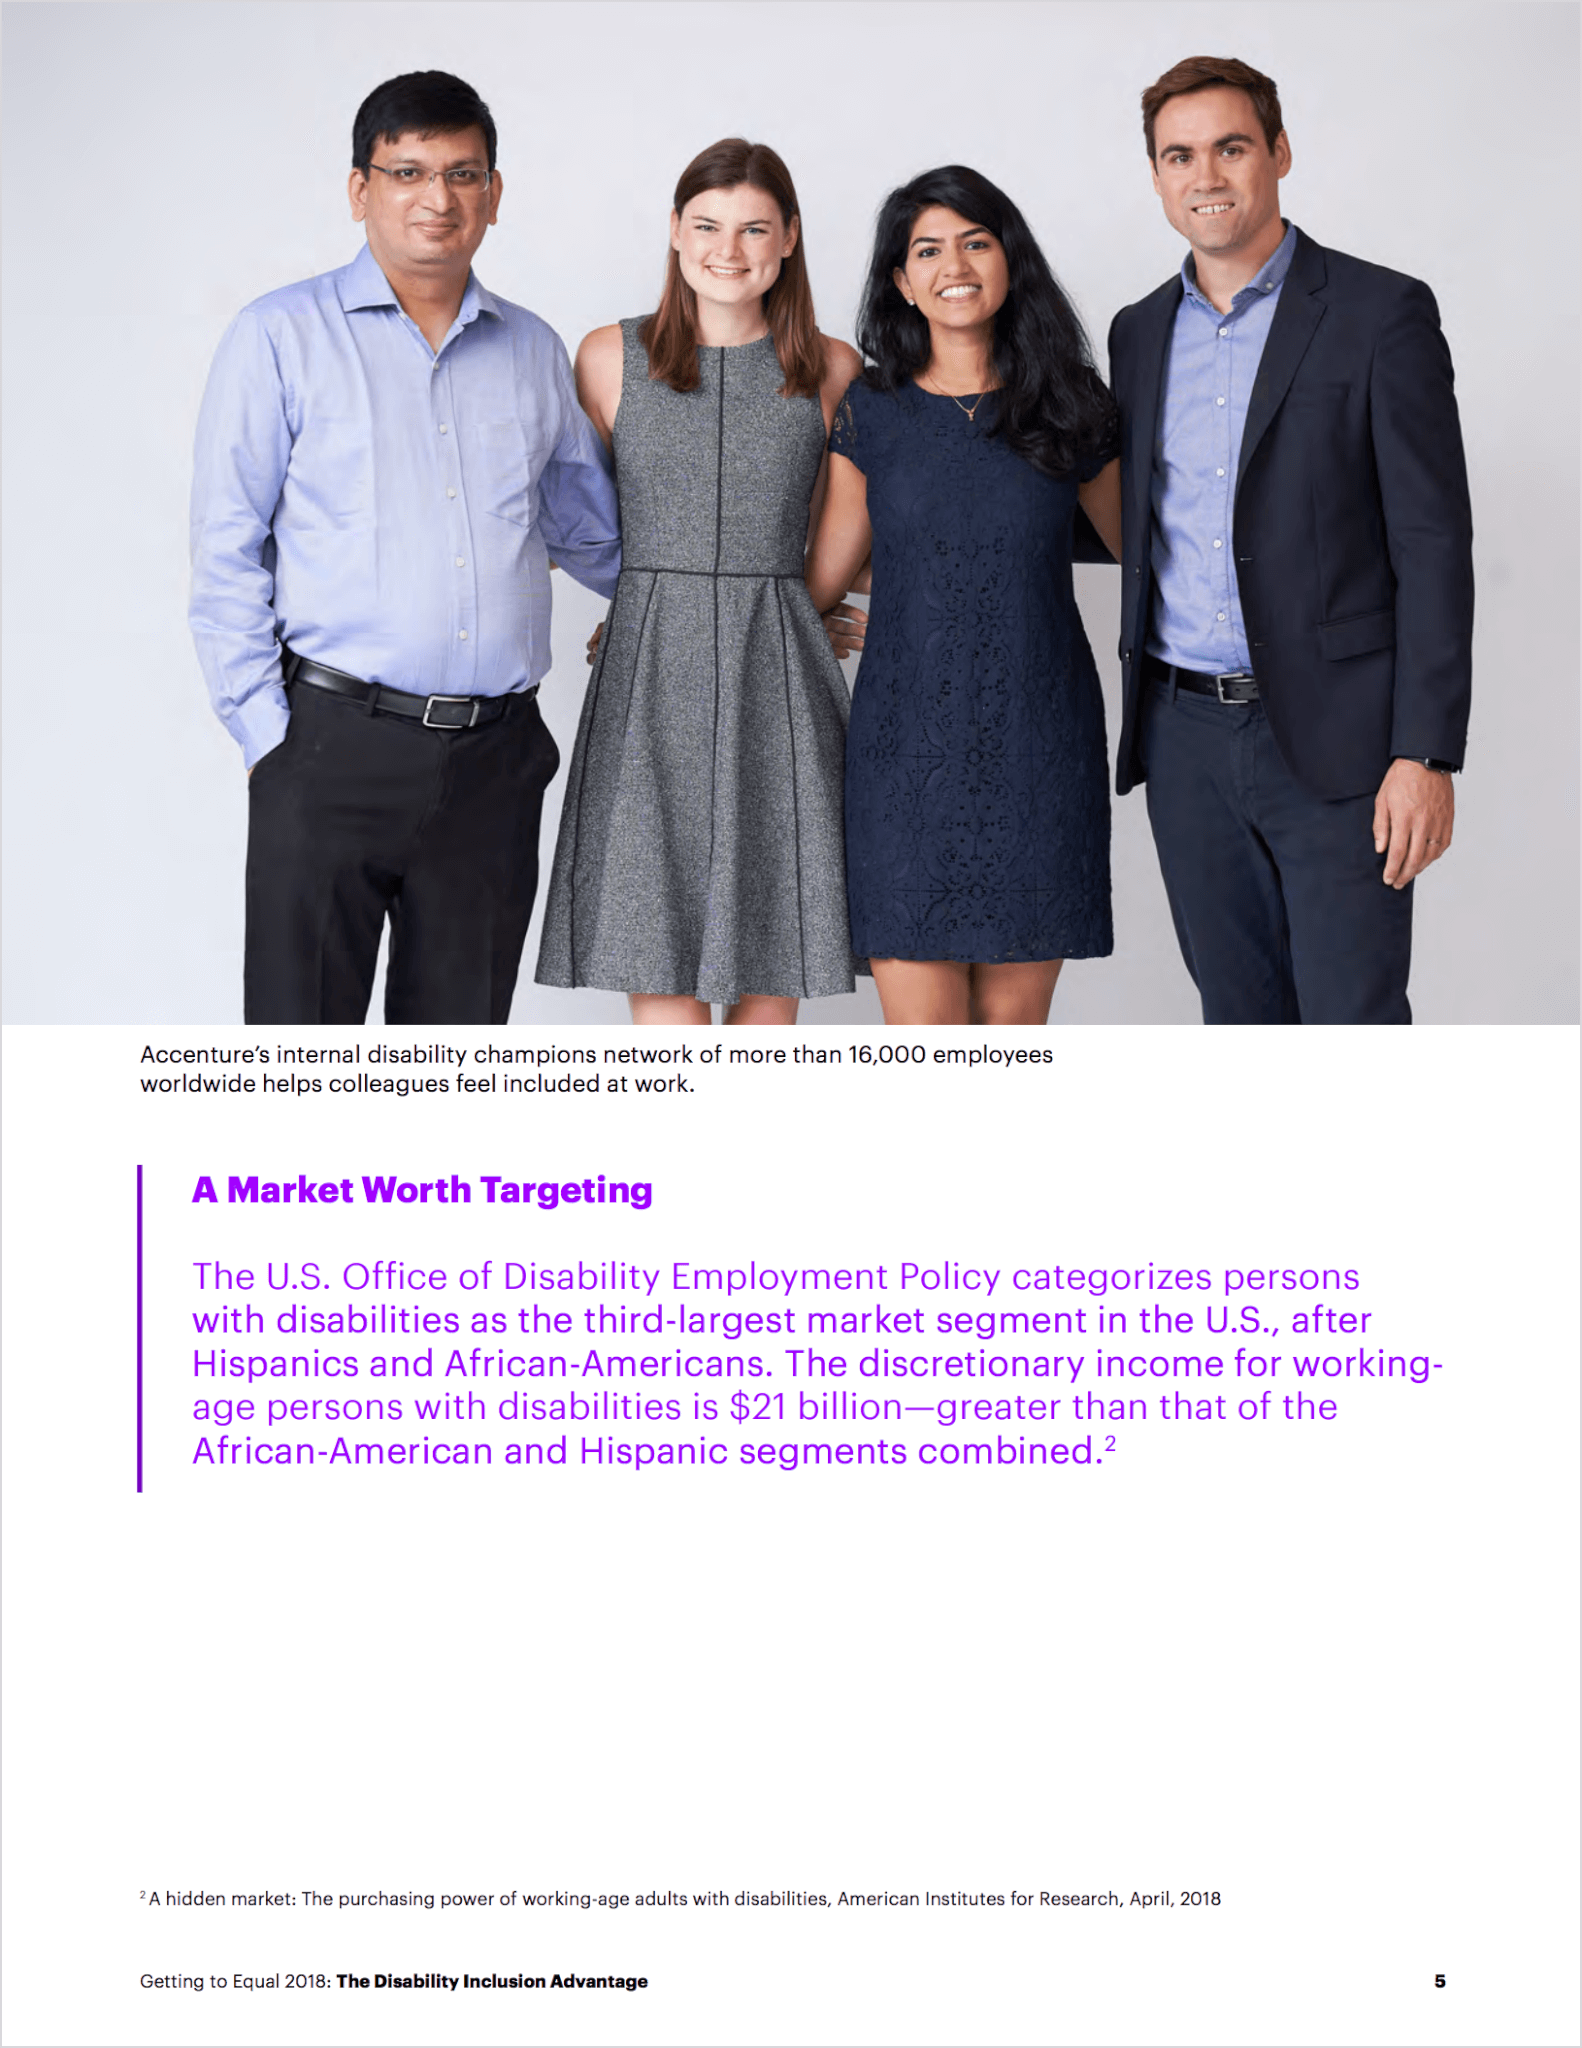 accenture page 4